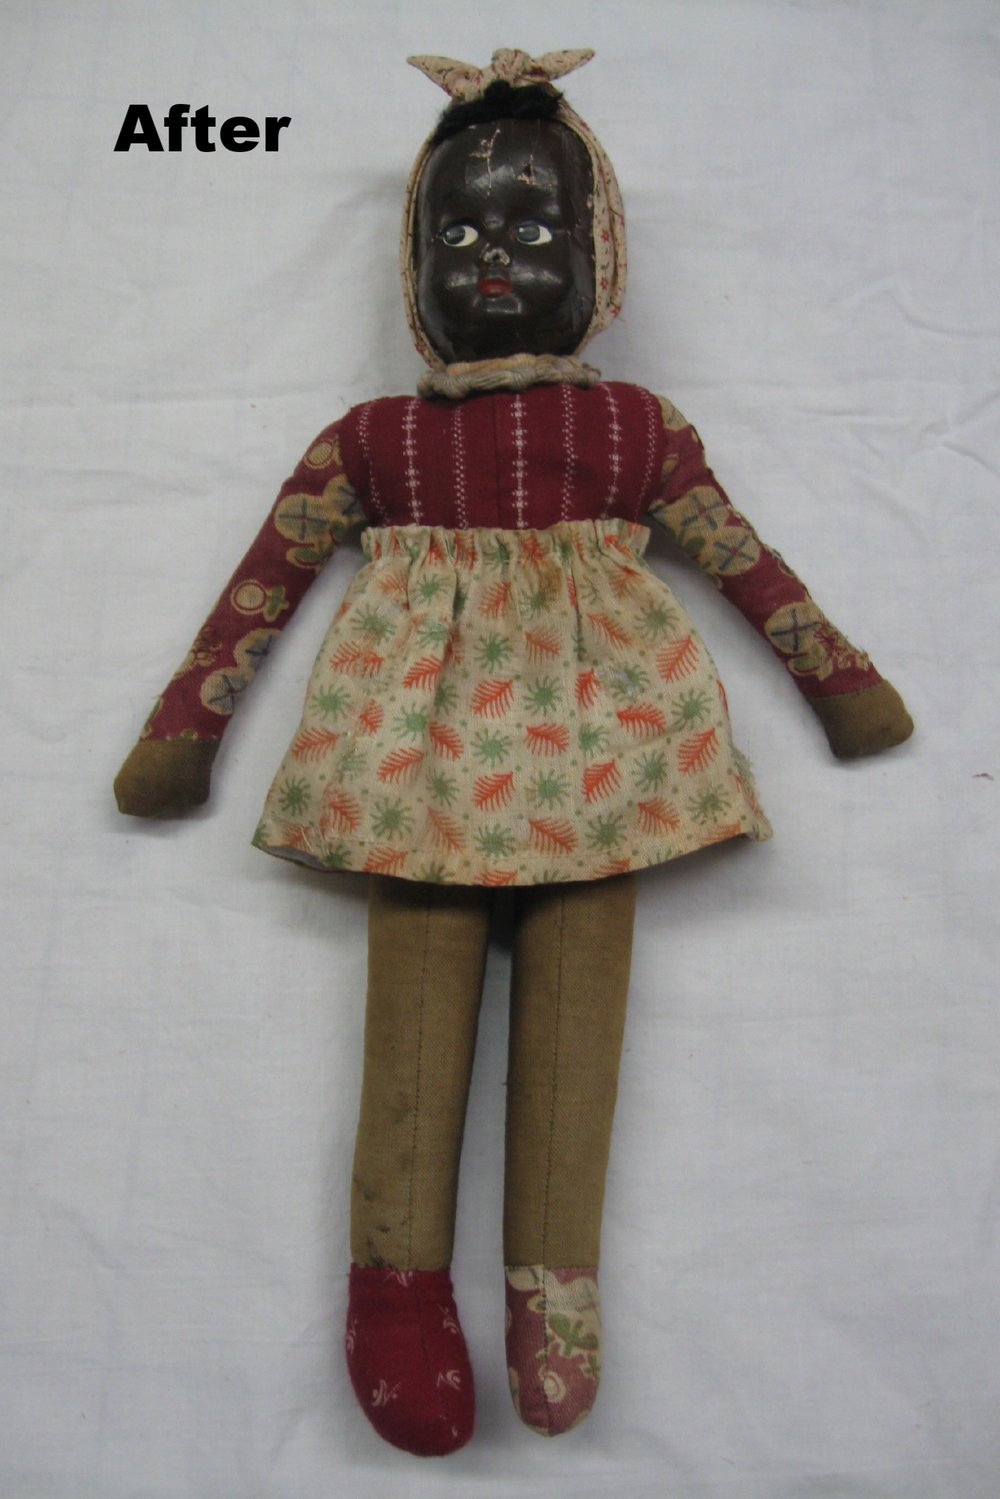 mammy-doll-after.jpg